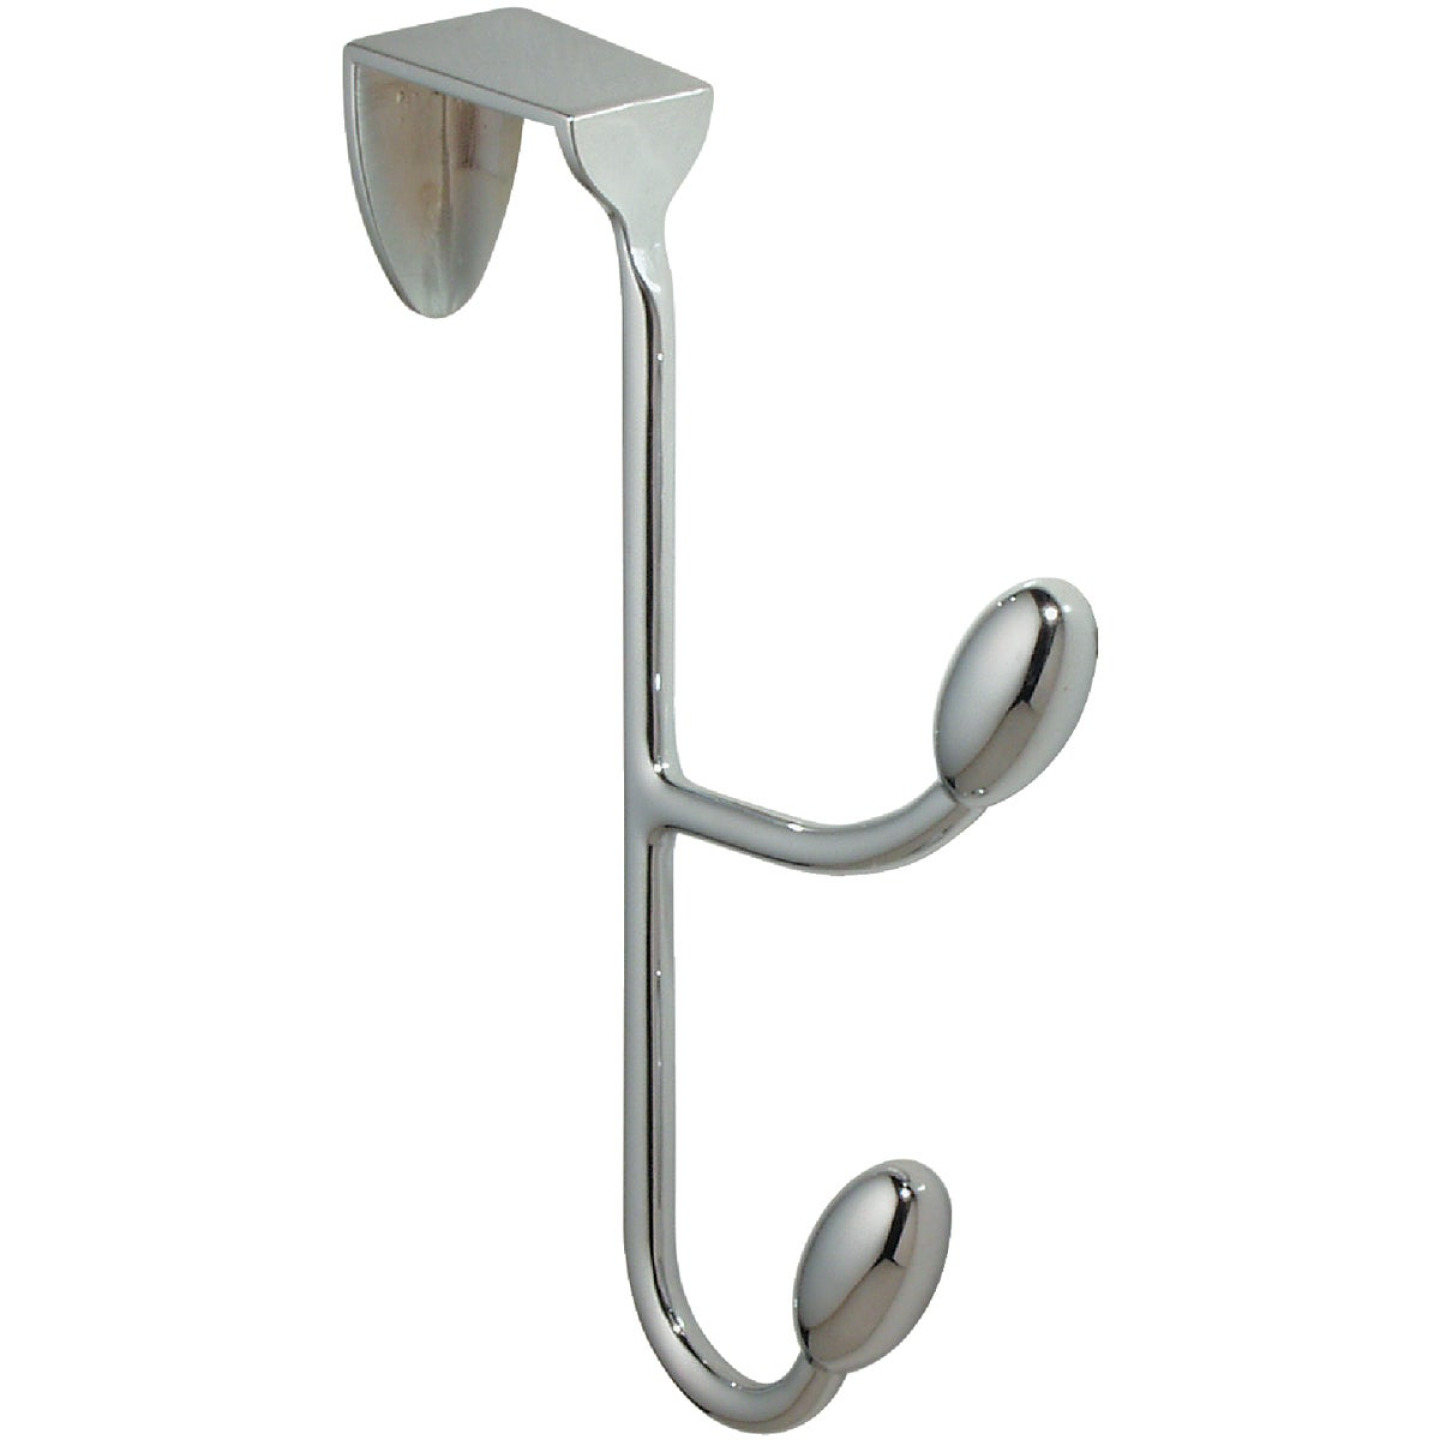 InterDesign Chrome 6 In. 4-1/4 In. Over-the-Door Hook Image 1